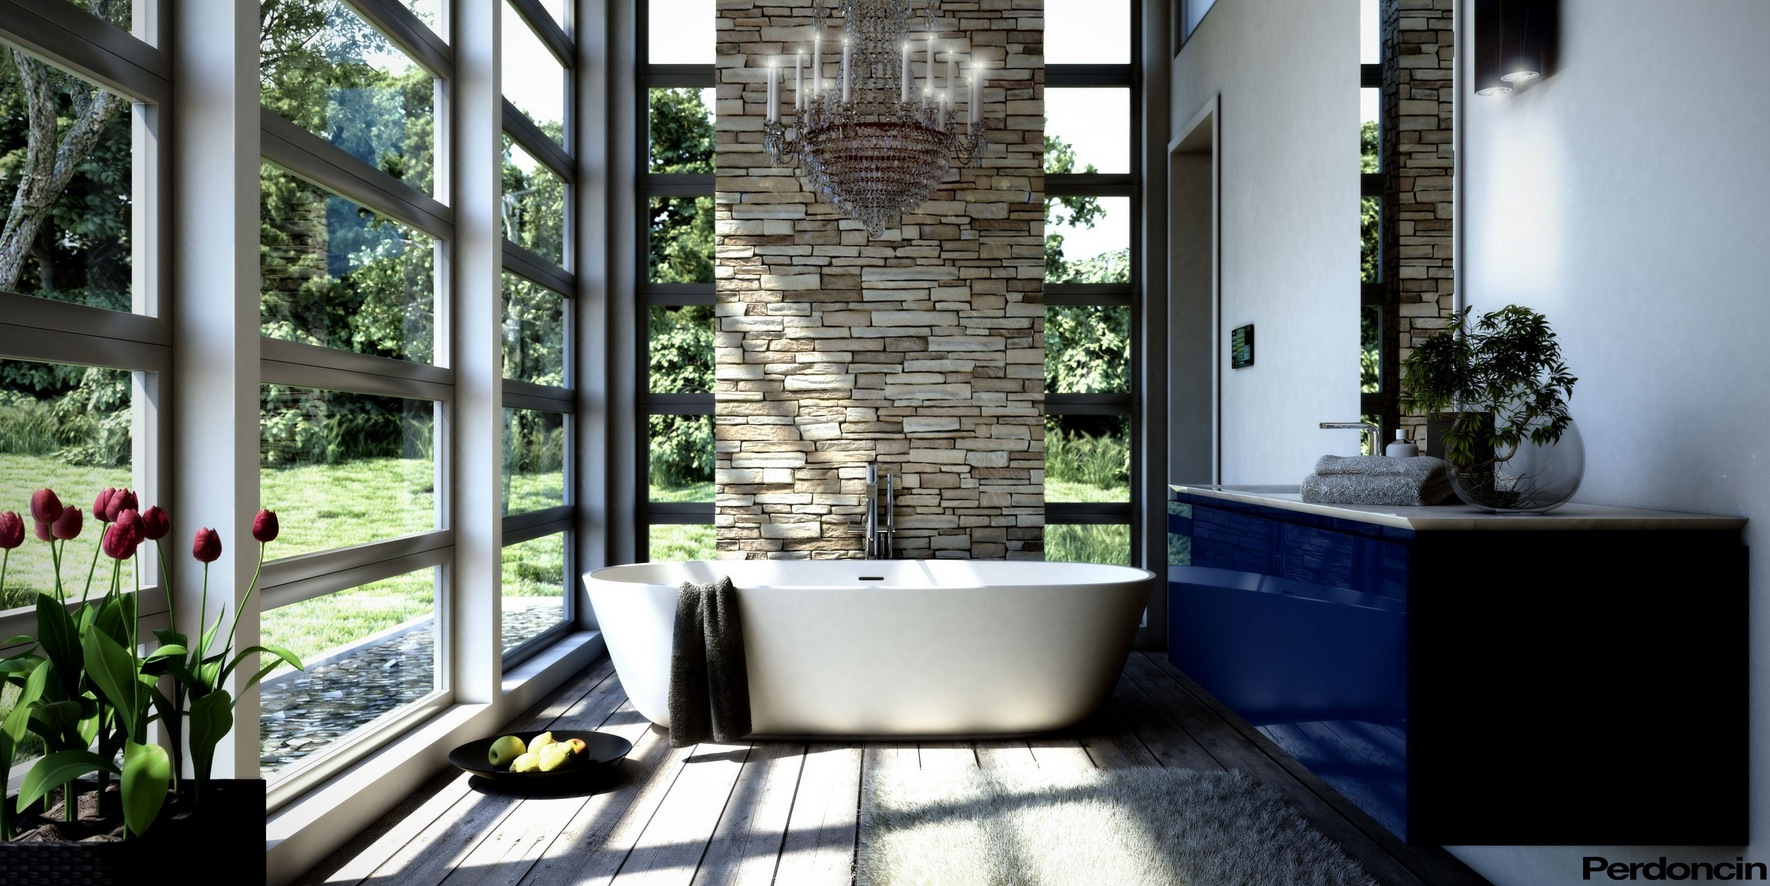 Bathtubs with a view of nature for Deco salle de bain zen et nature